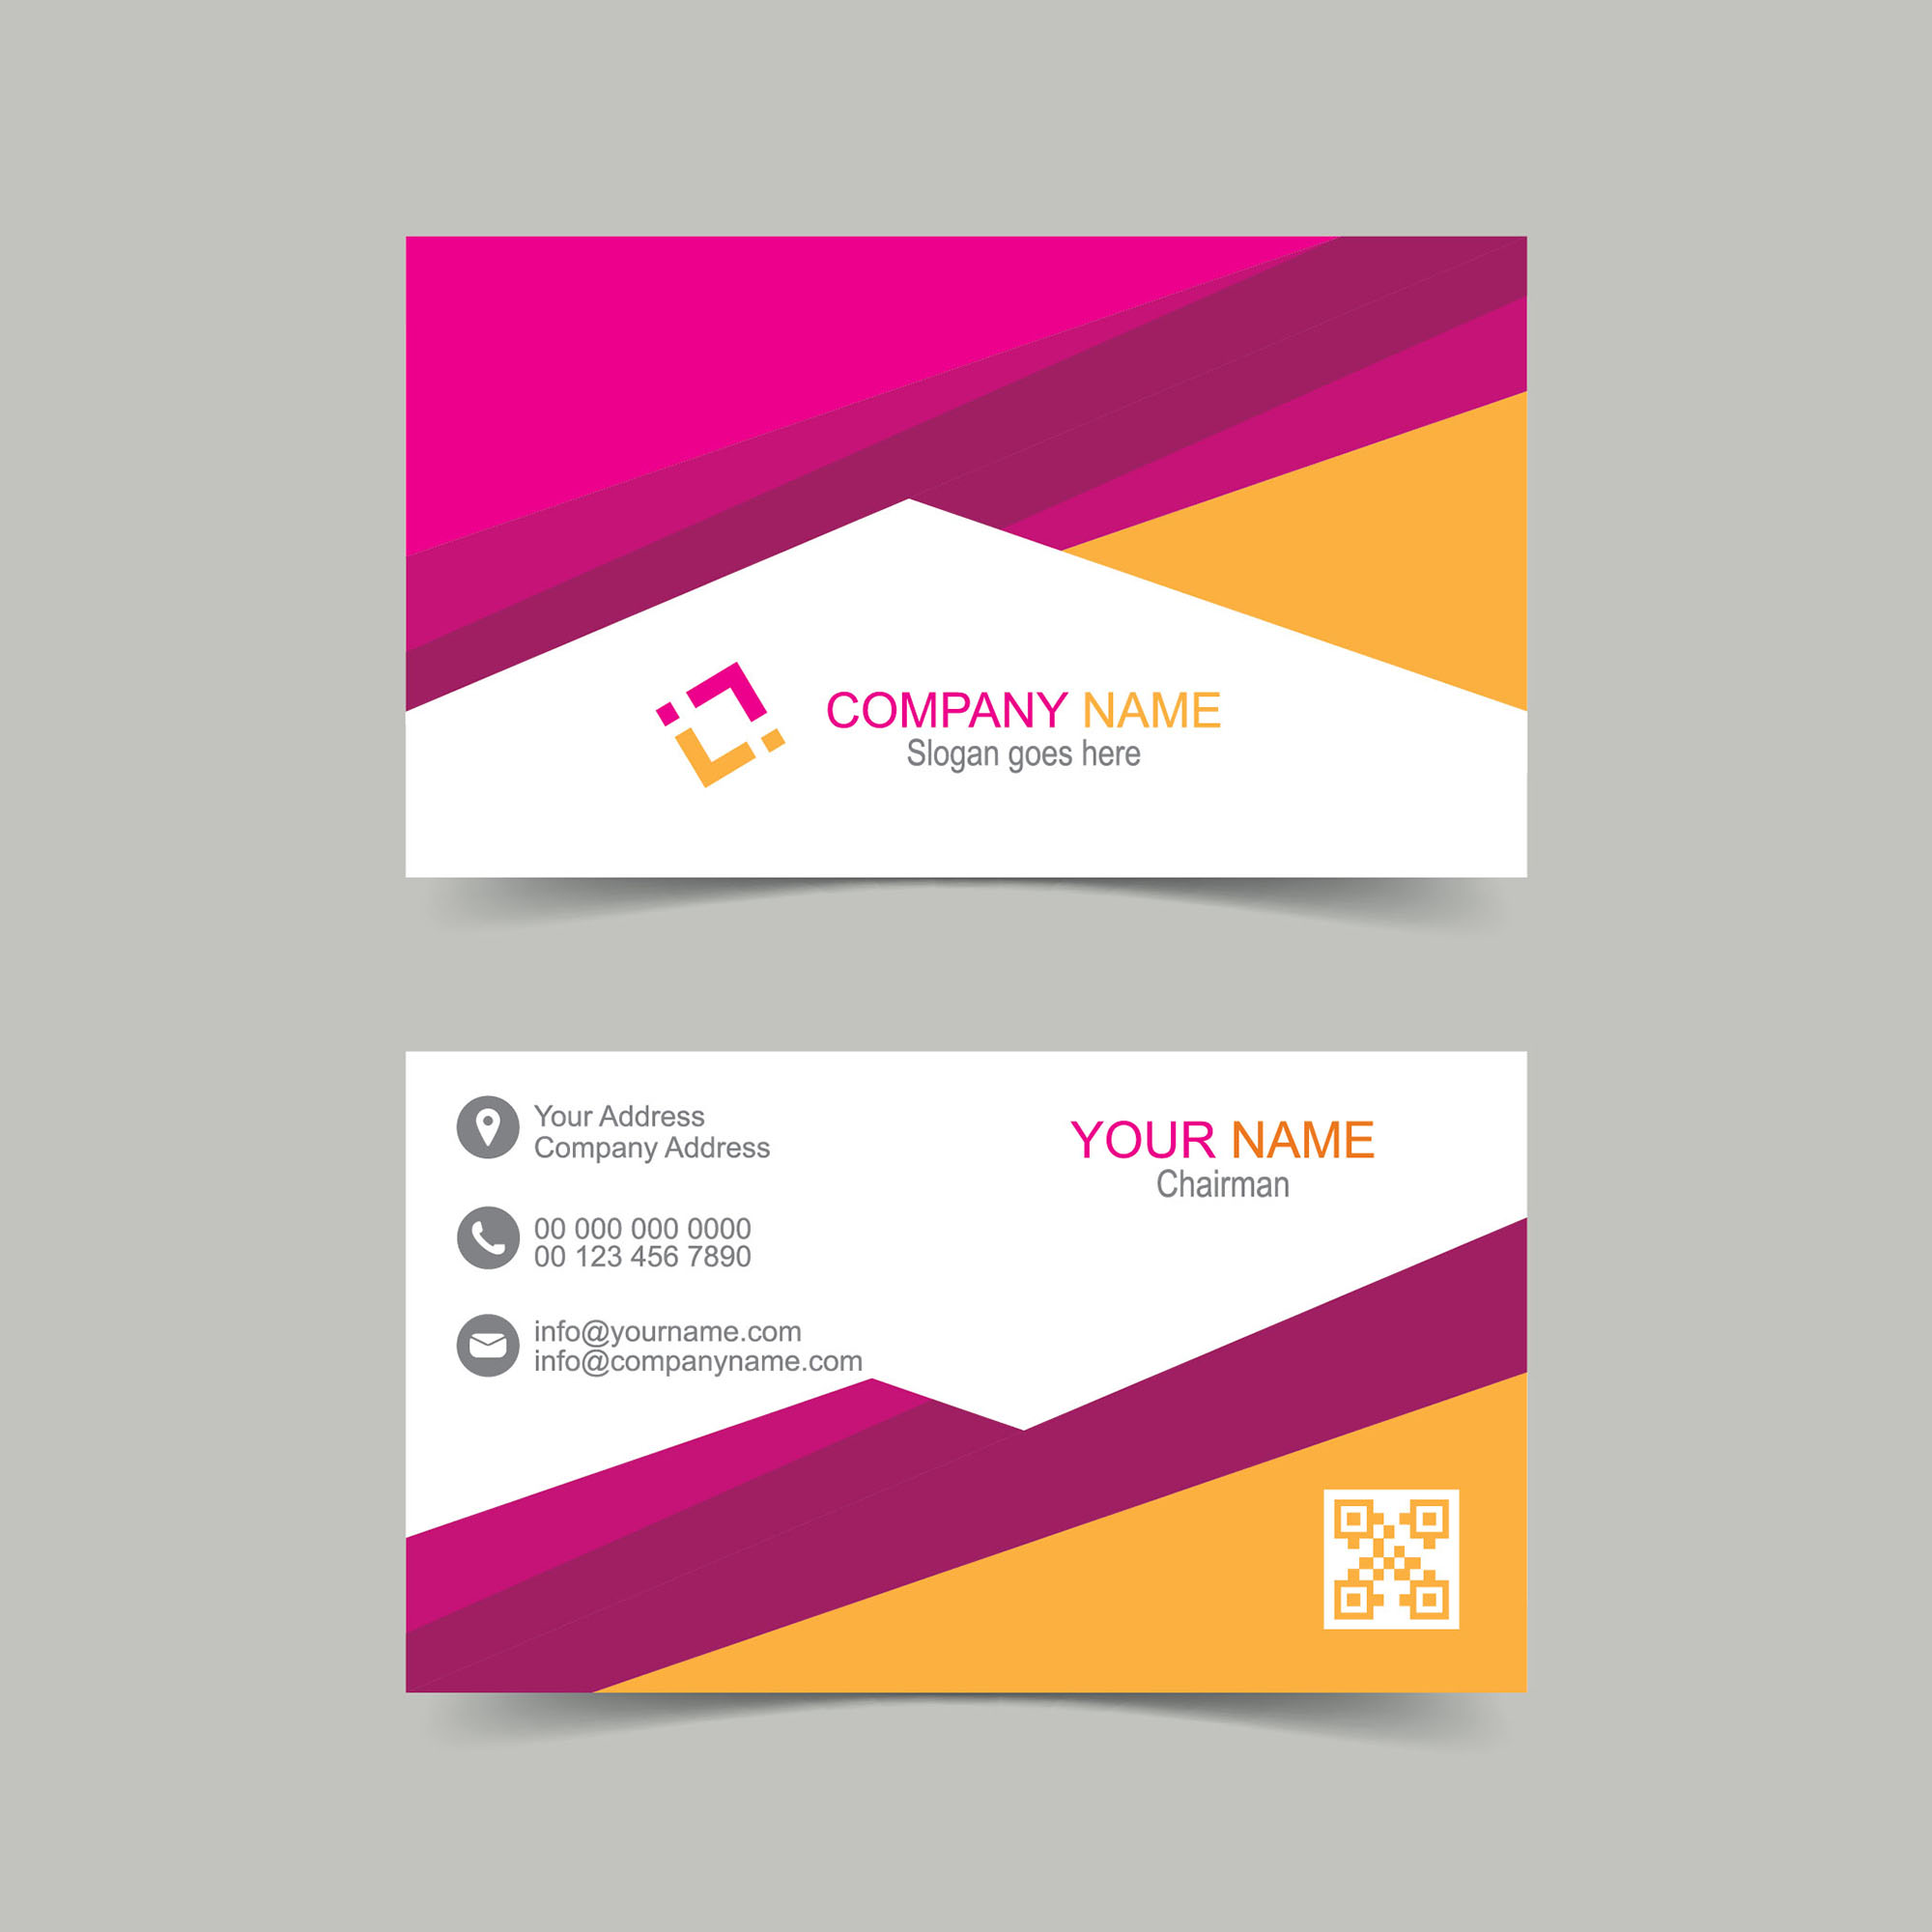 Vector business card design free download wisxi business card business cards business card design business card template design templates reheart